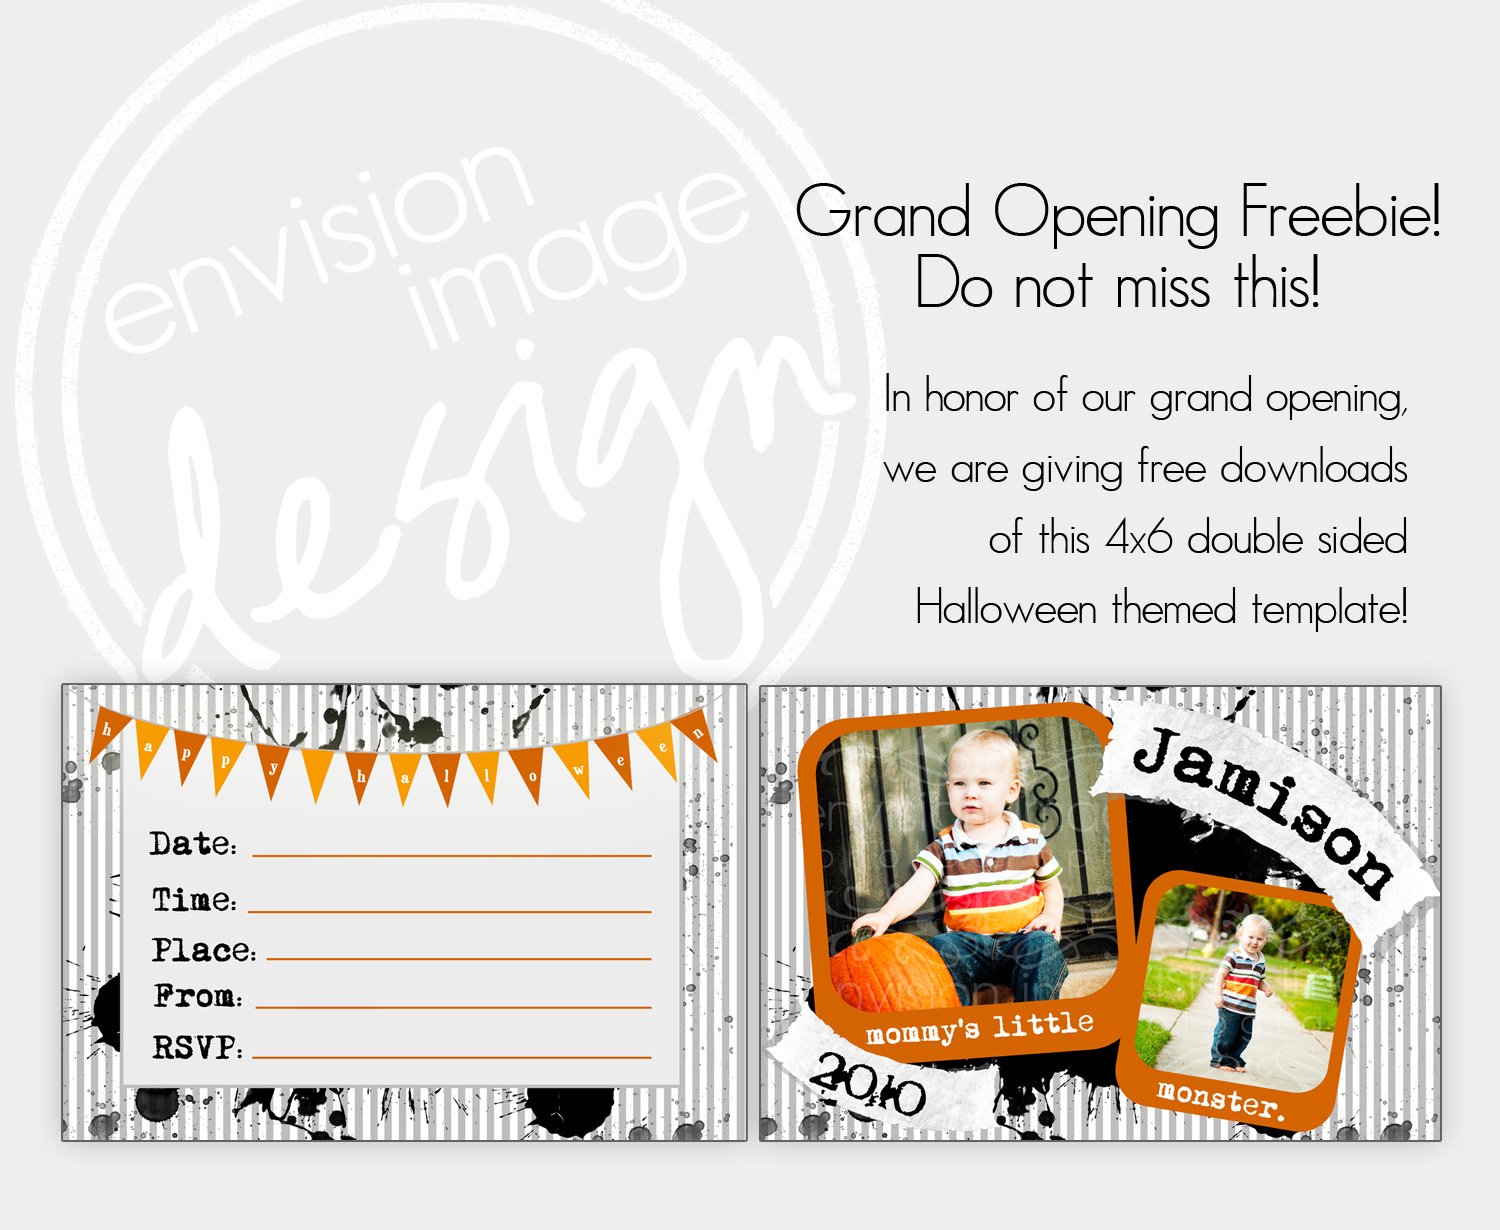 envision image design grand opening freebie 4x6 double sided halloween card template. Black Bedroom Furniture Sets. Home Design Ideas